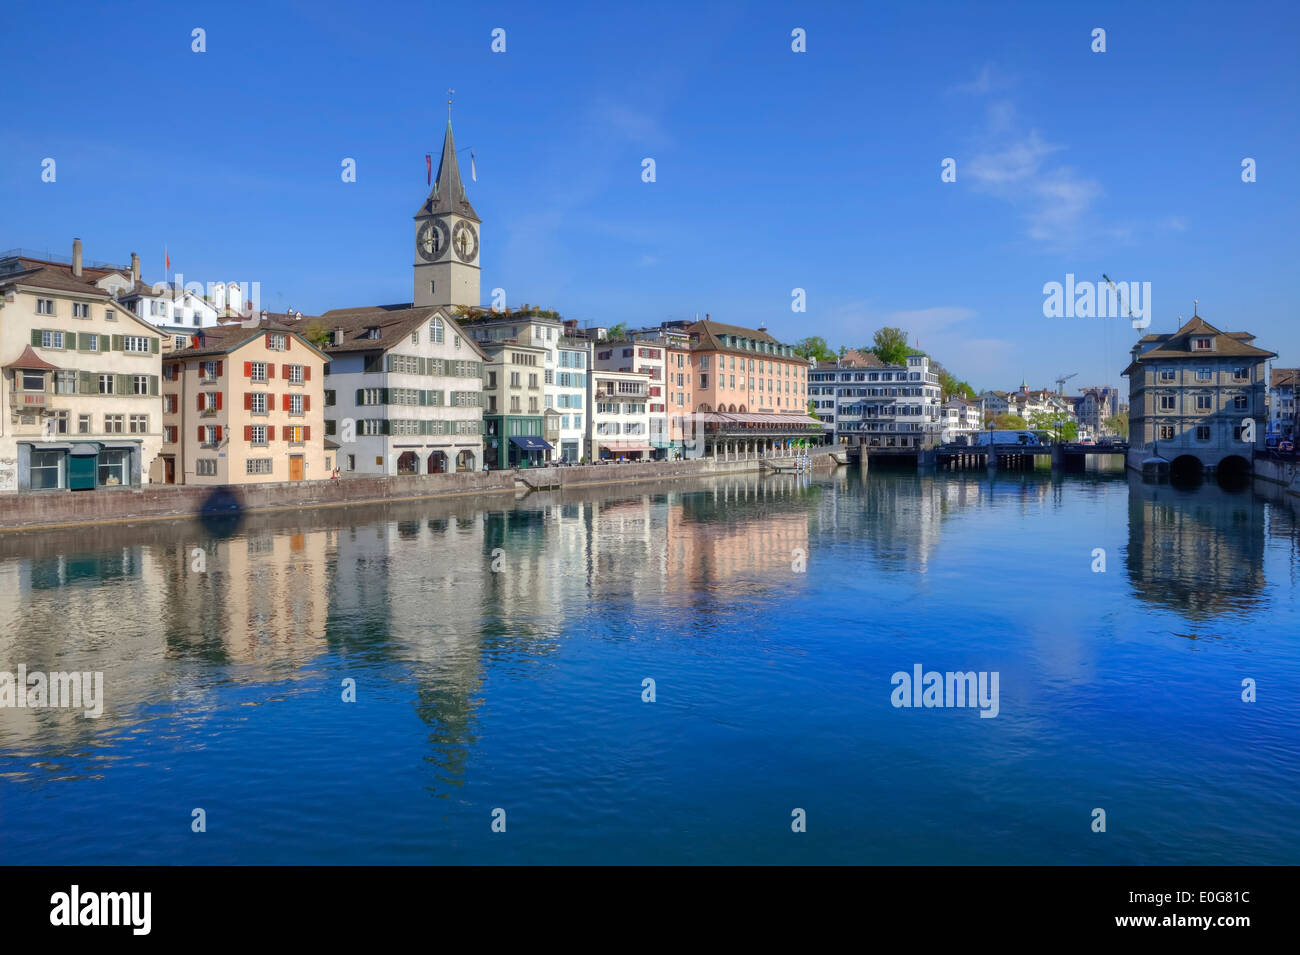 Zurich, St. Peter, church, Wuehre, Limmat, Switzerland - Stock Image